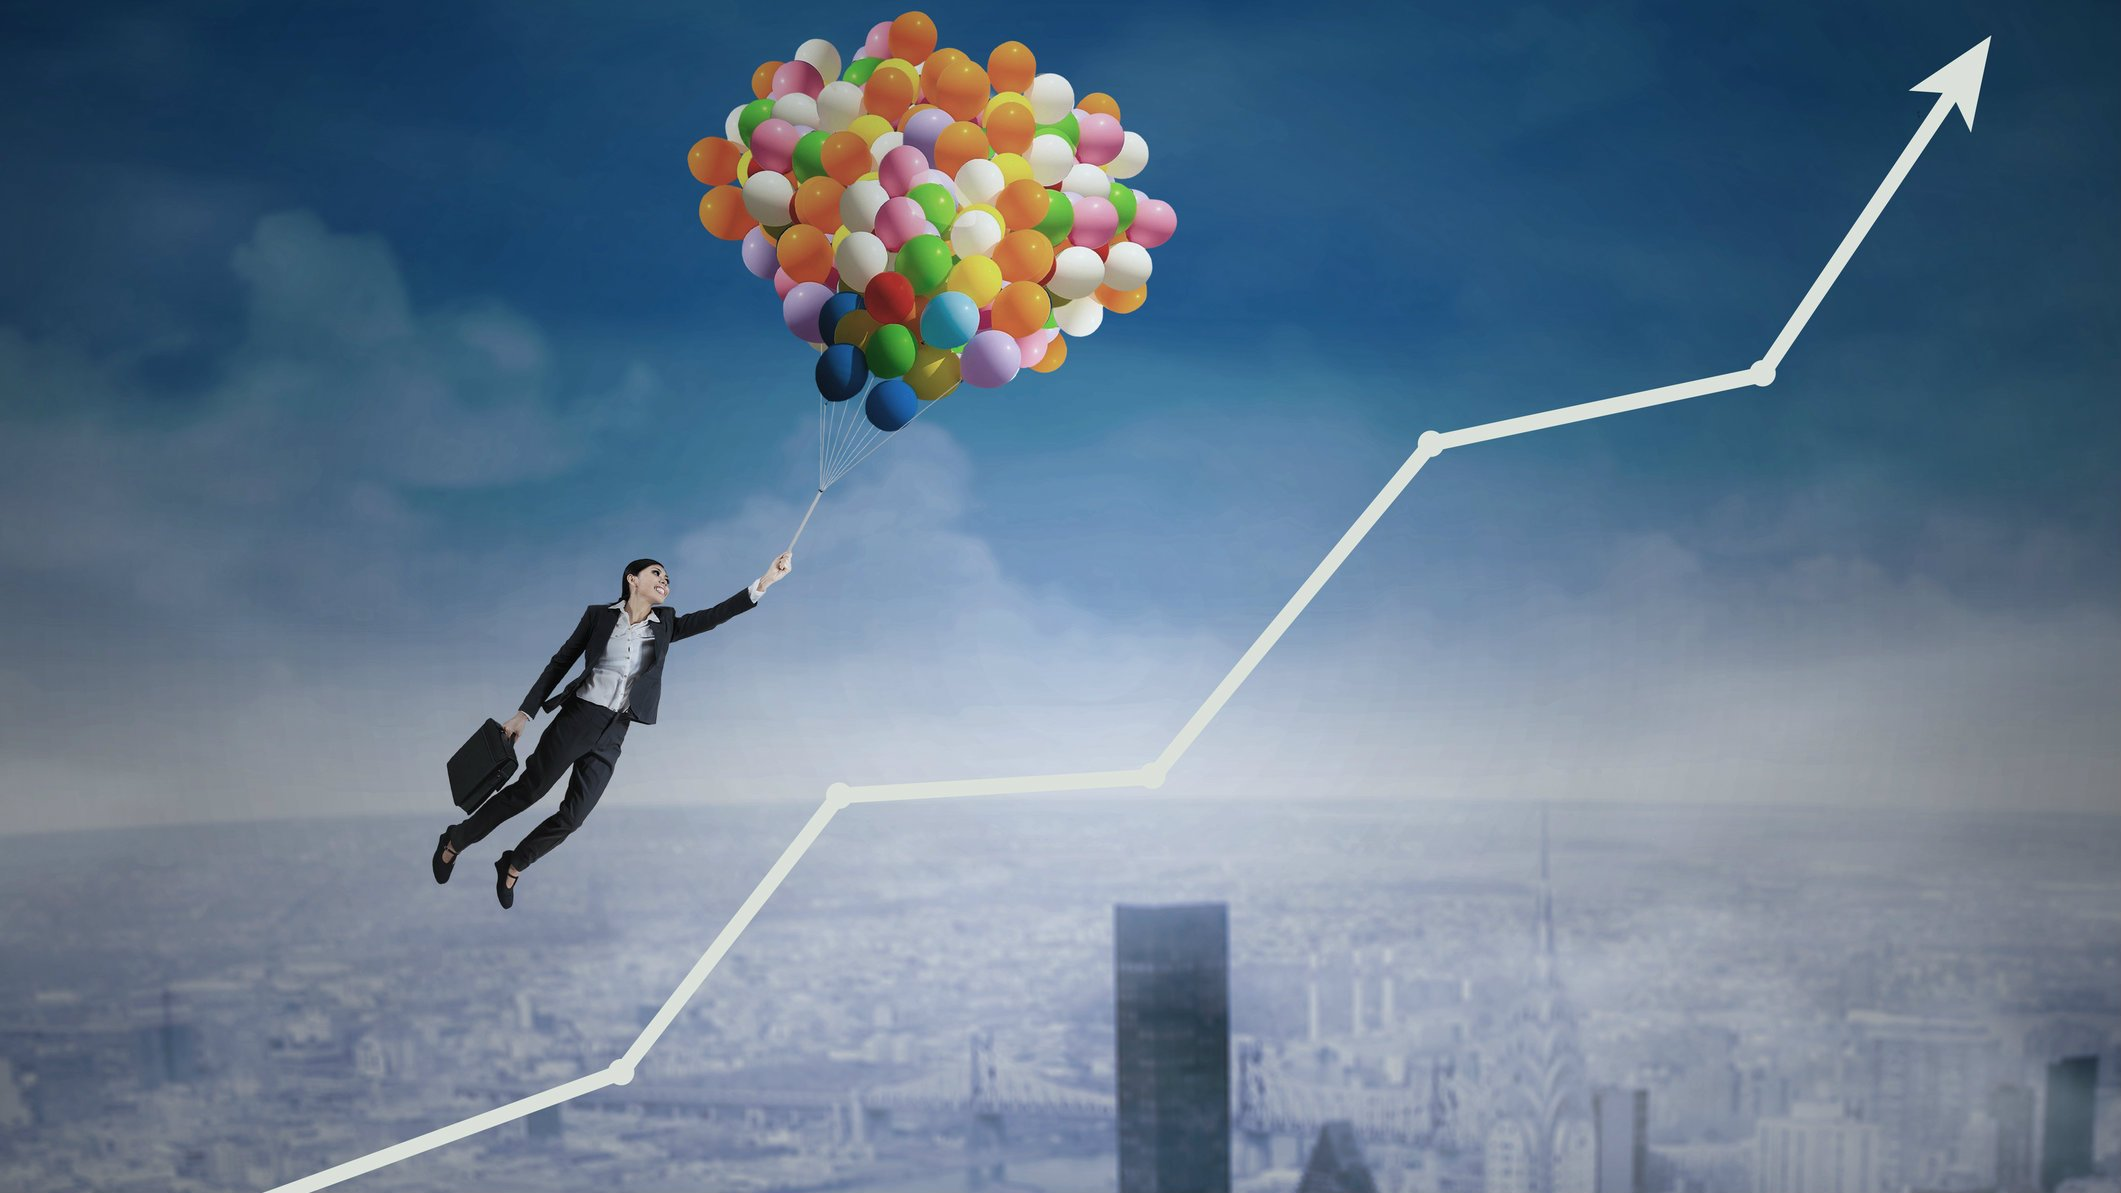 Businesswoman-Balloons-Flying-High-16.9